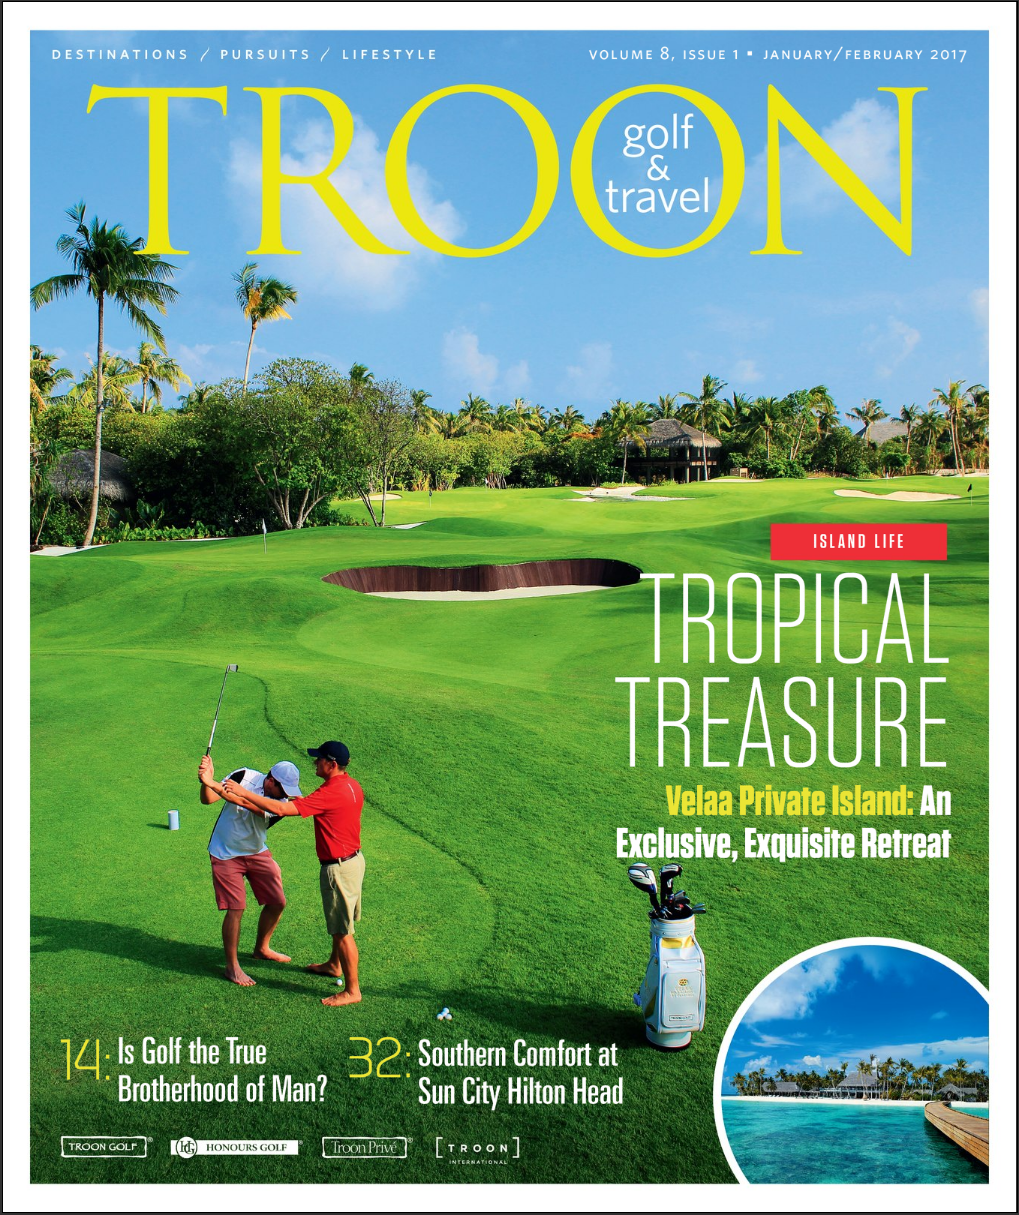 troon-golf-and-travel-jan-feb.png